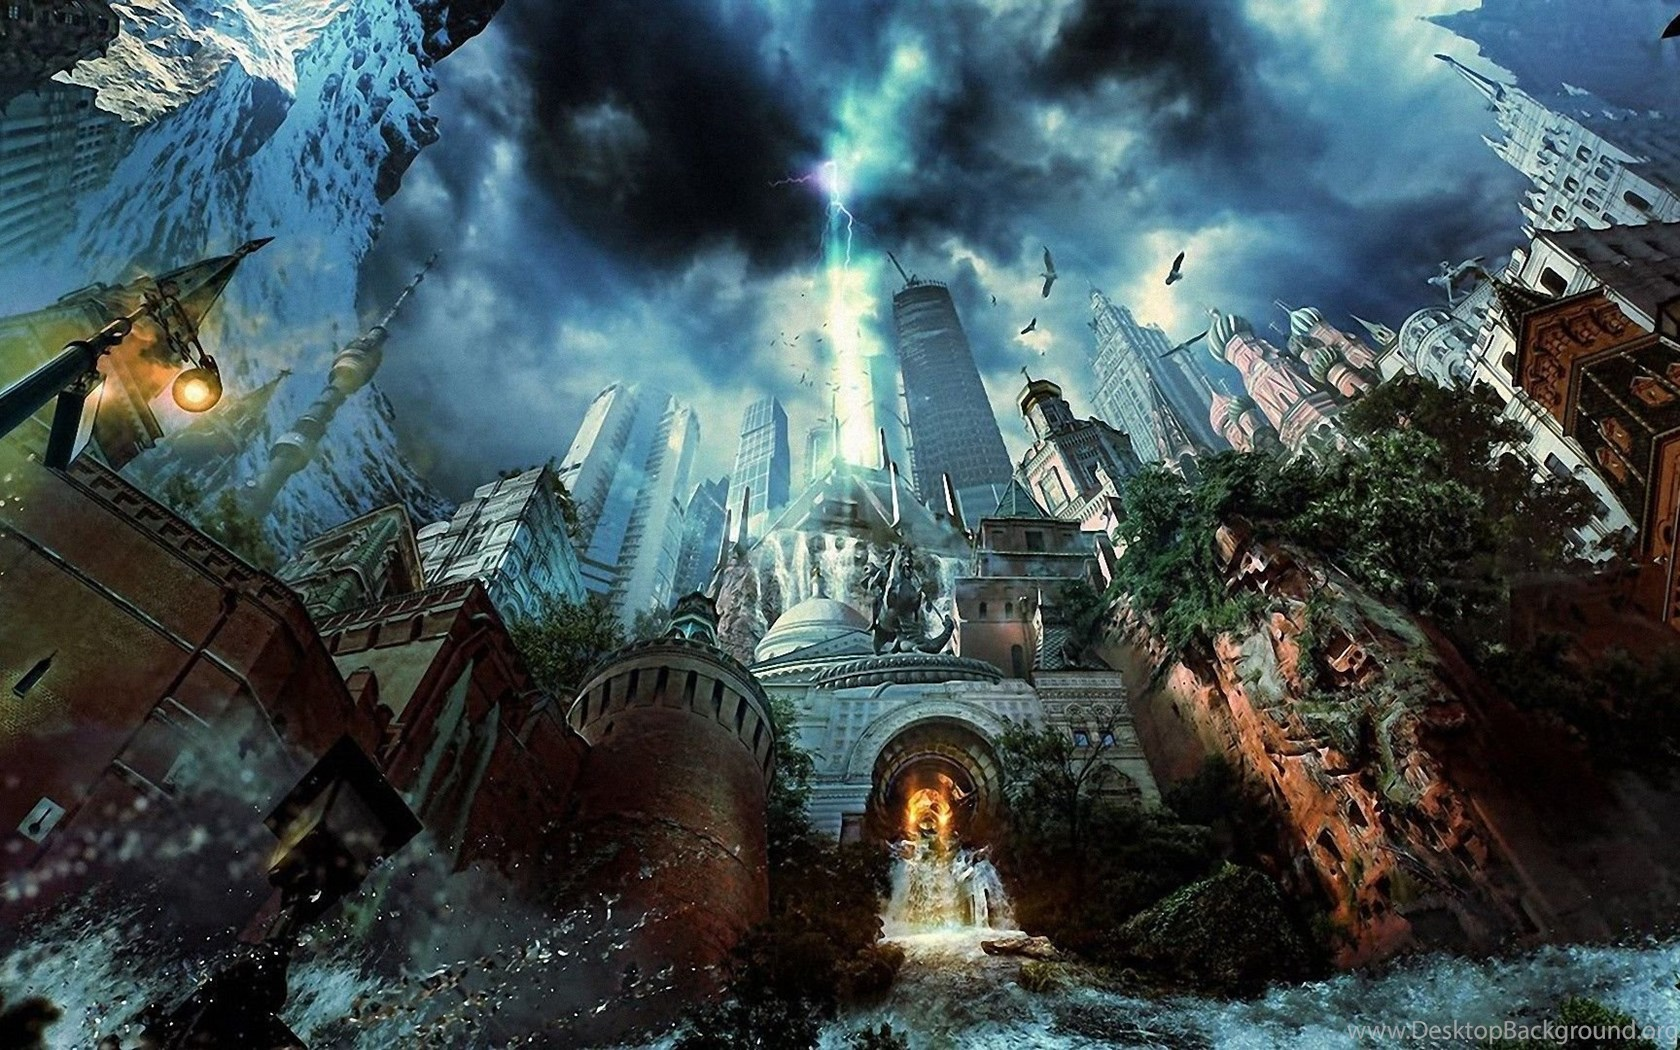 Image Detail For Fantasy Ipad Wallpaper: Fantasy Desktop Backgrounds 15441 HD Wallpapers Site